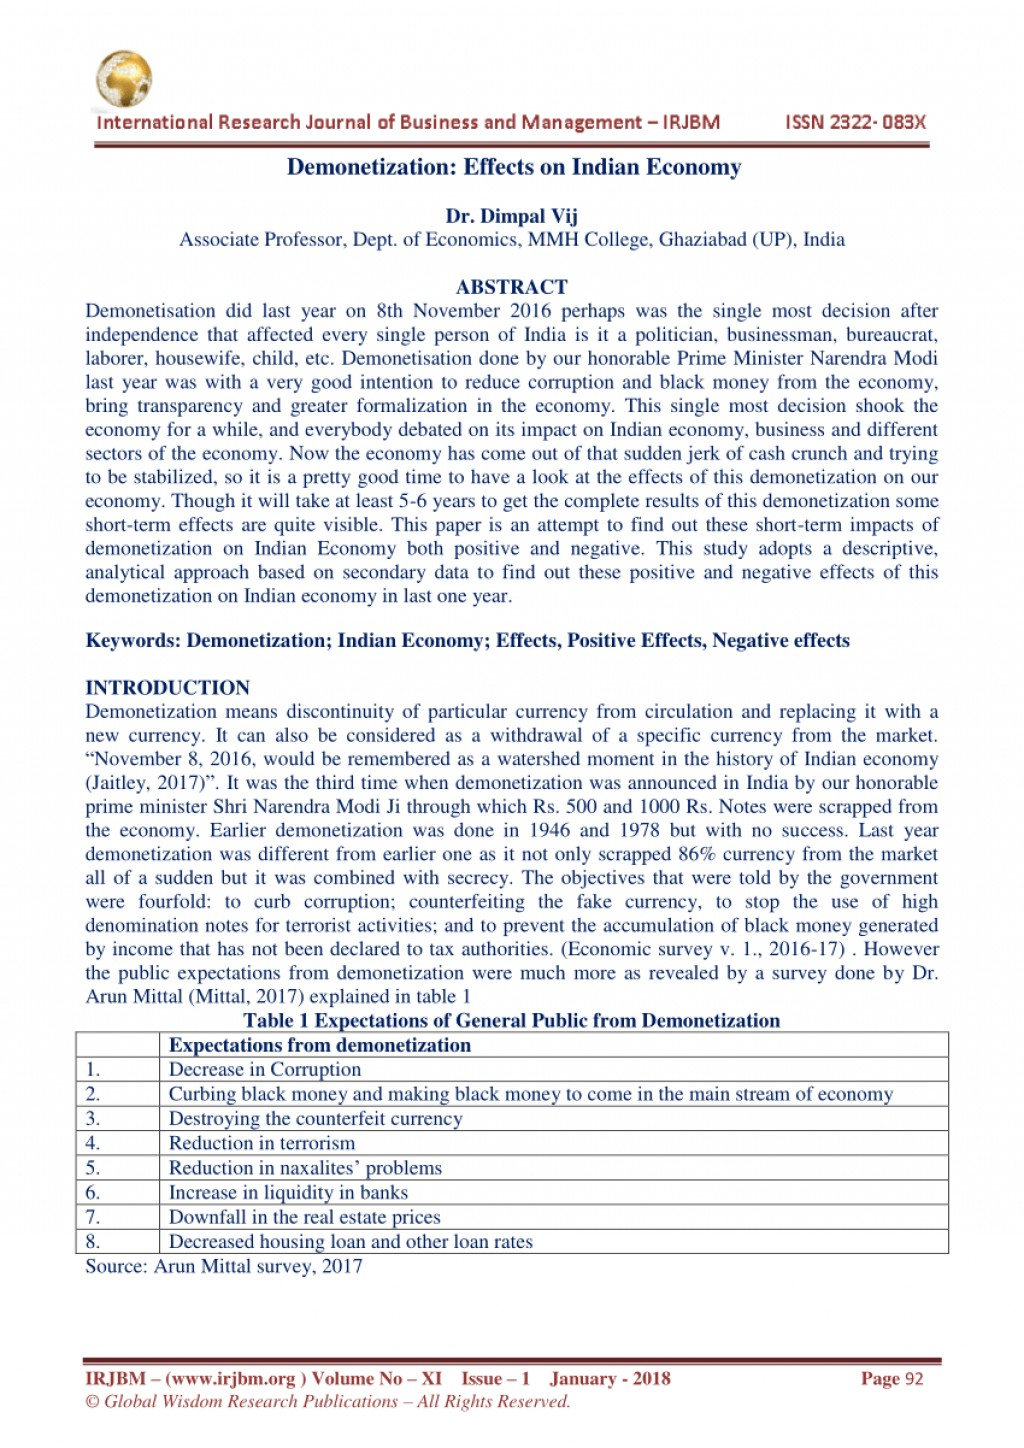 002 Demonetization And Its Impact On Indian Economy Research Paper Frightening Large